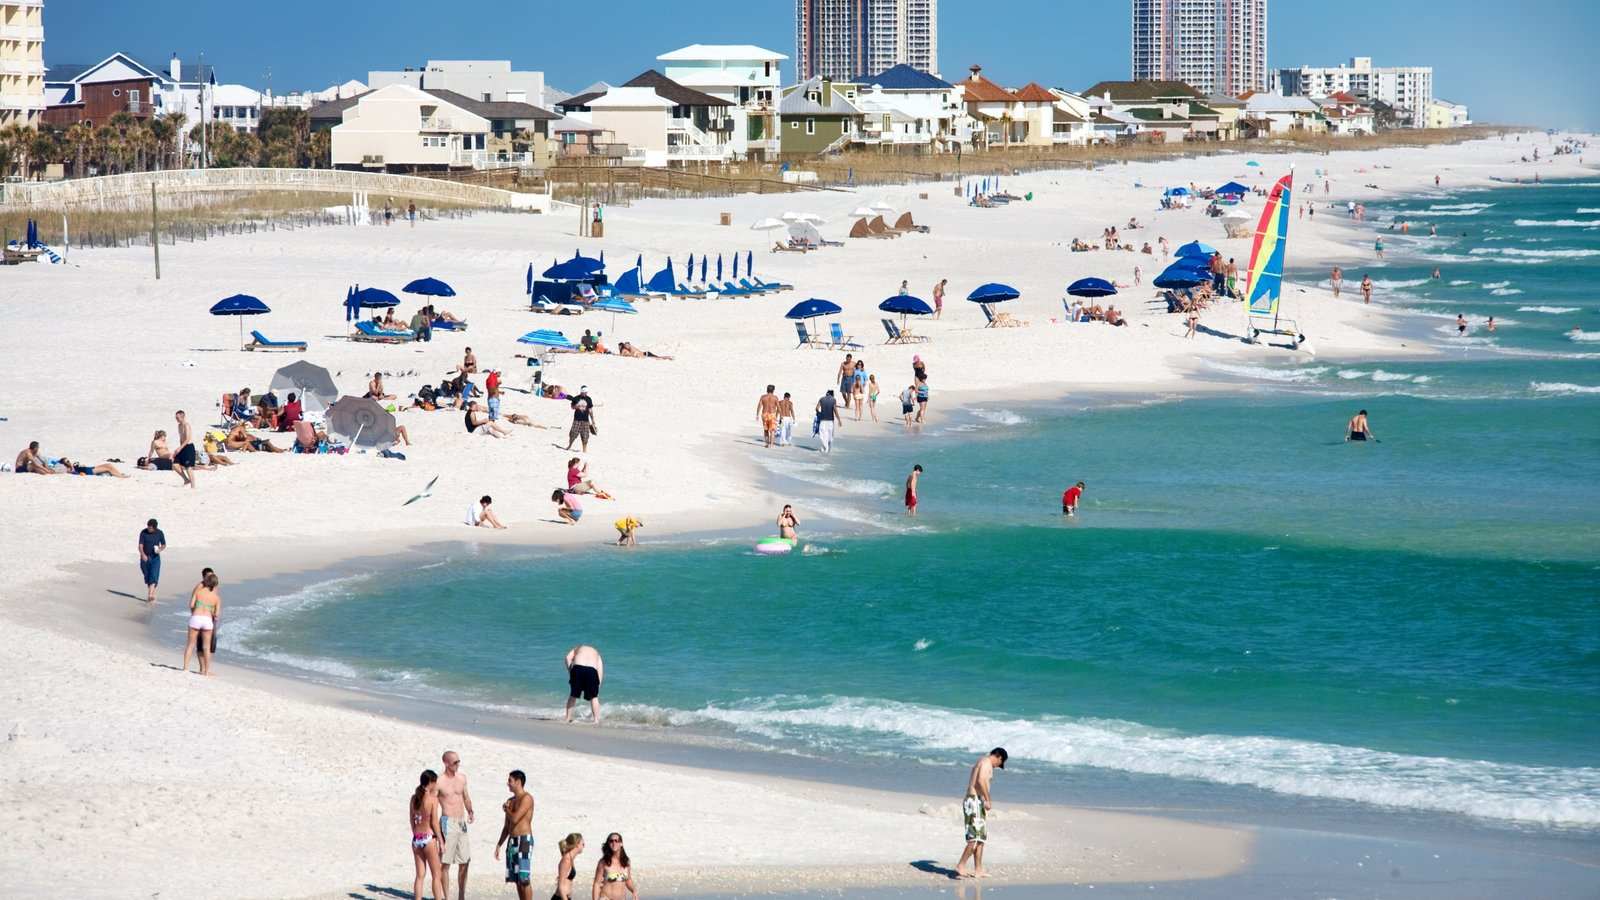 Pensacola showing a sandy beach and a coastal town as well as a large group of people